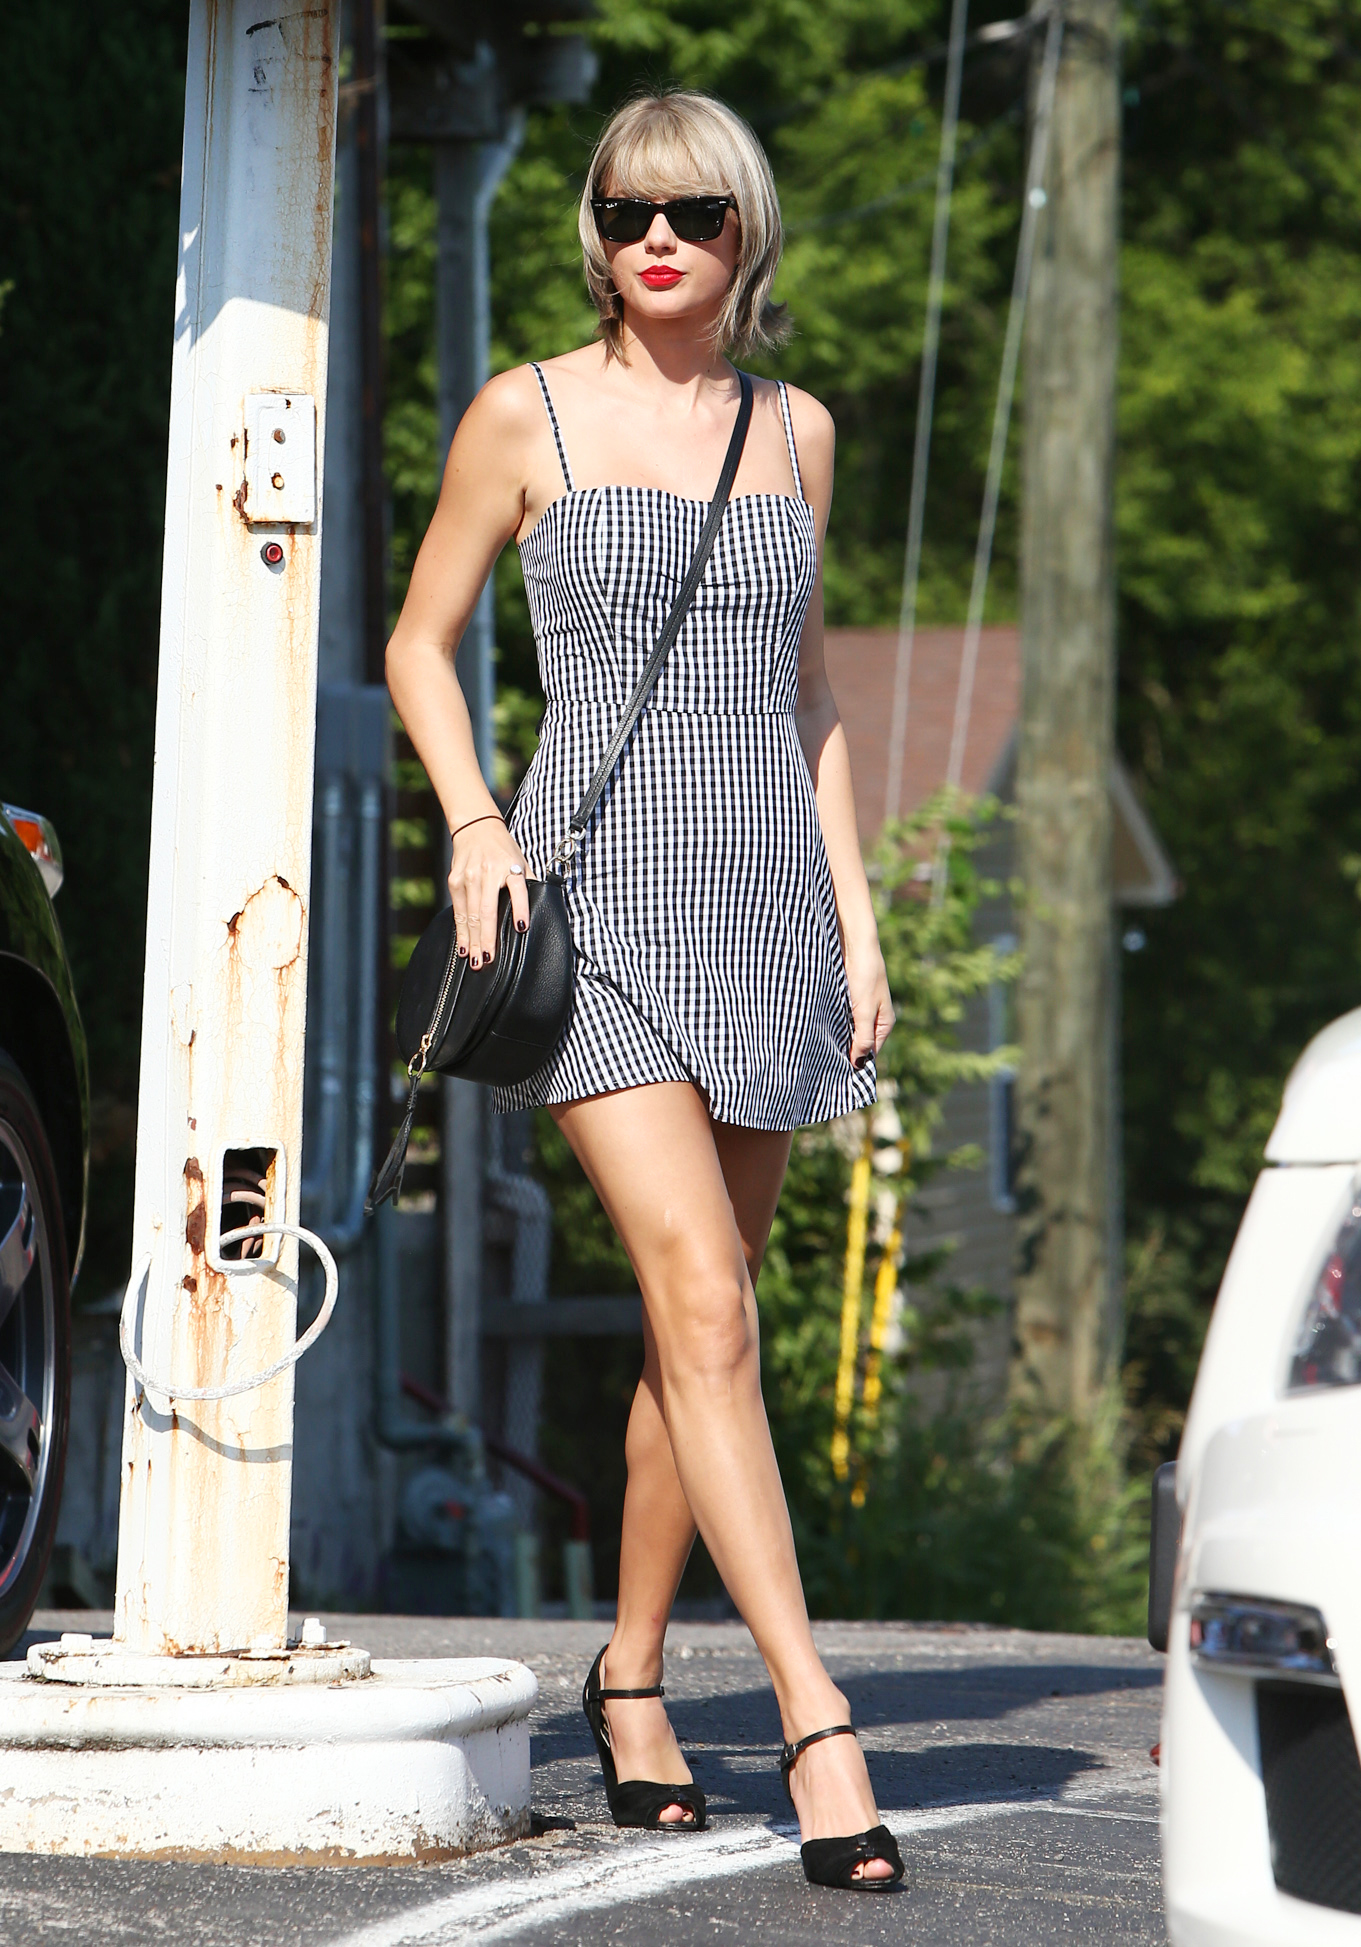 Taylor Swift in Black Bandeau and Leather Skirt - Fashion and ...